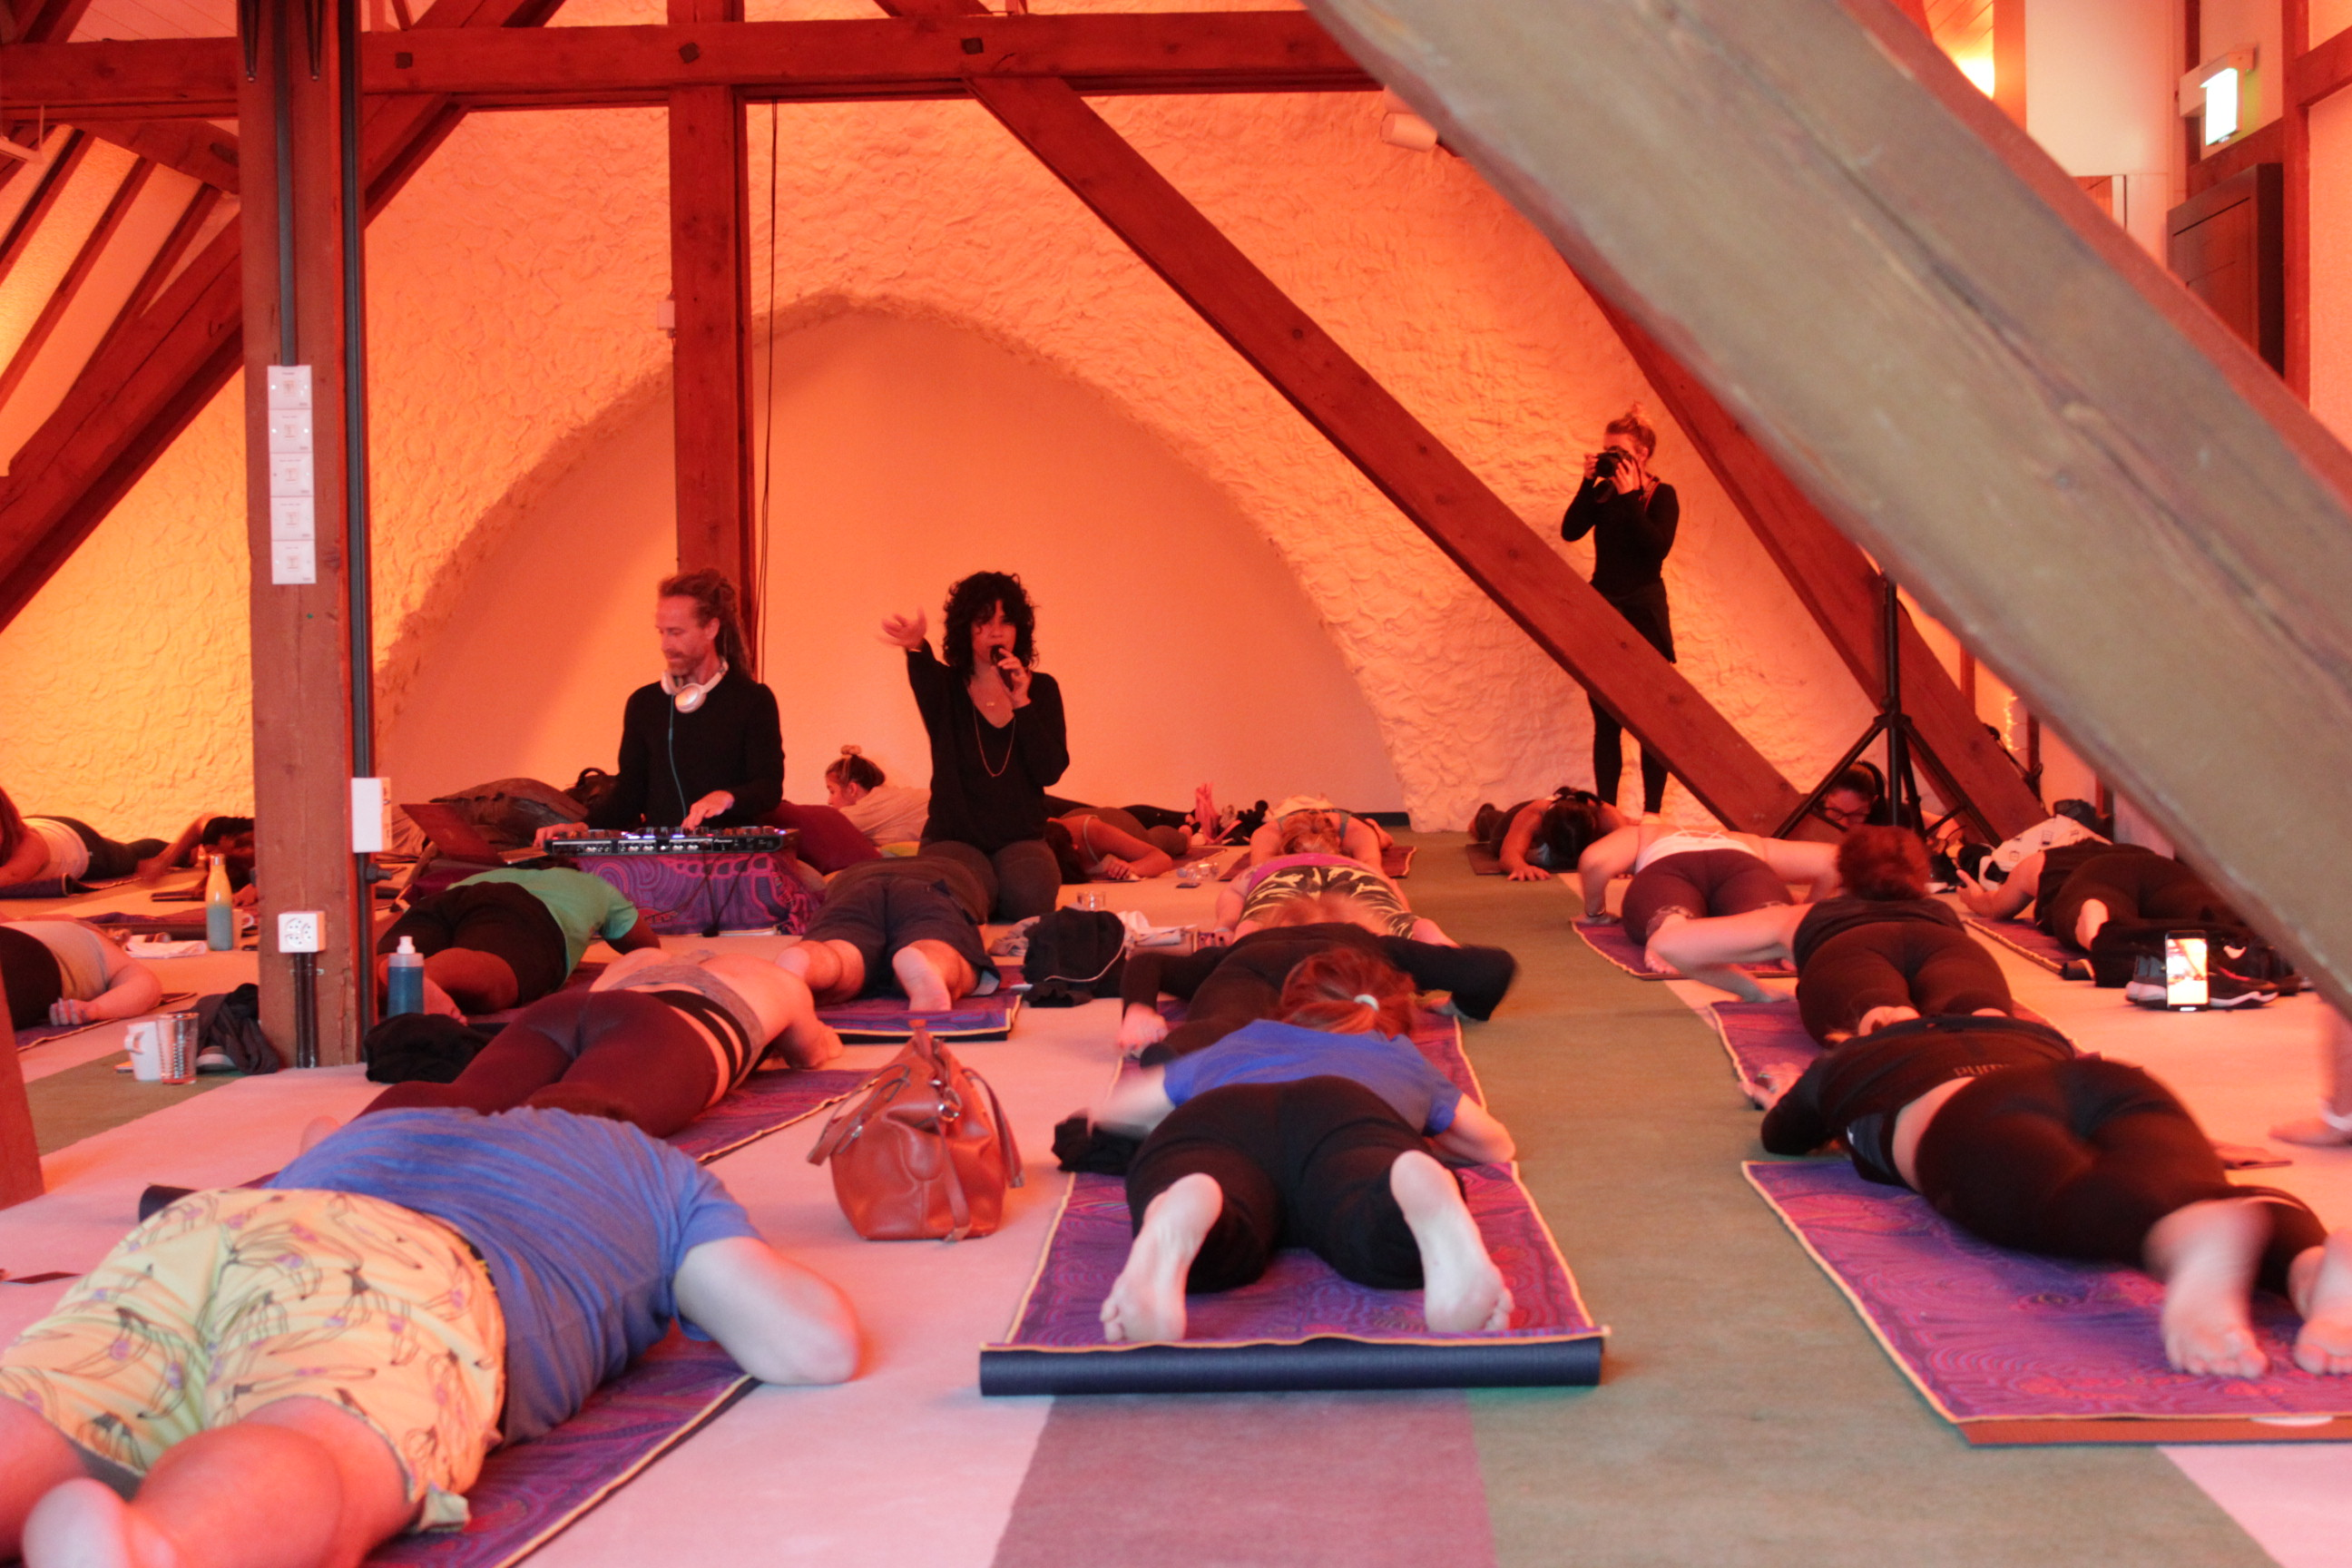 Spiritual in Switzerland: Find your inner peace with rock 'n' roll yoga in Davos